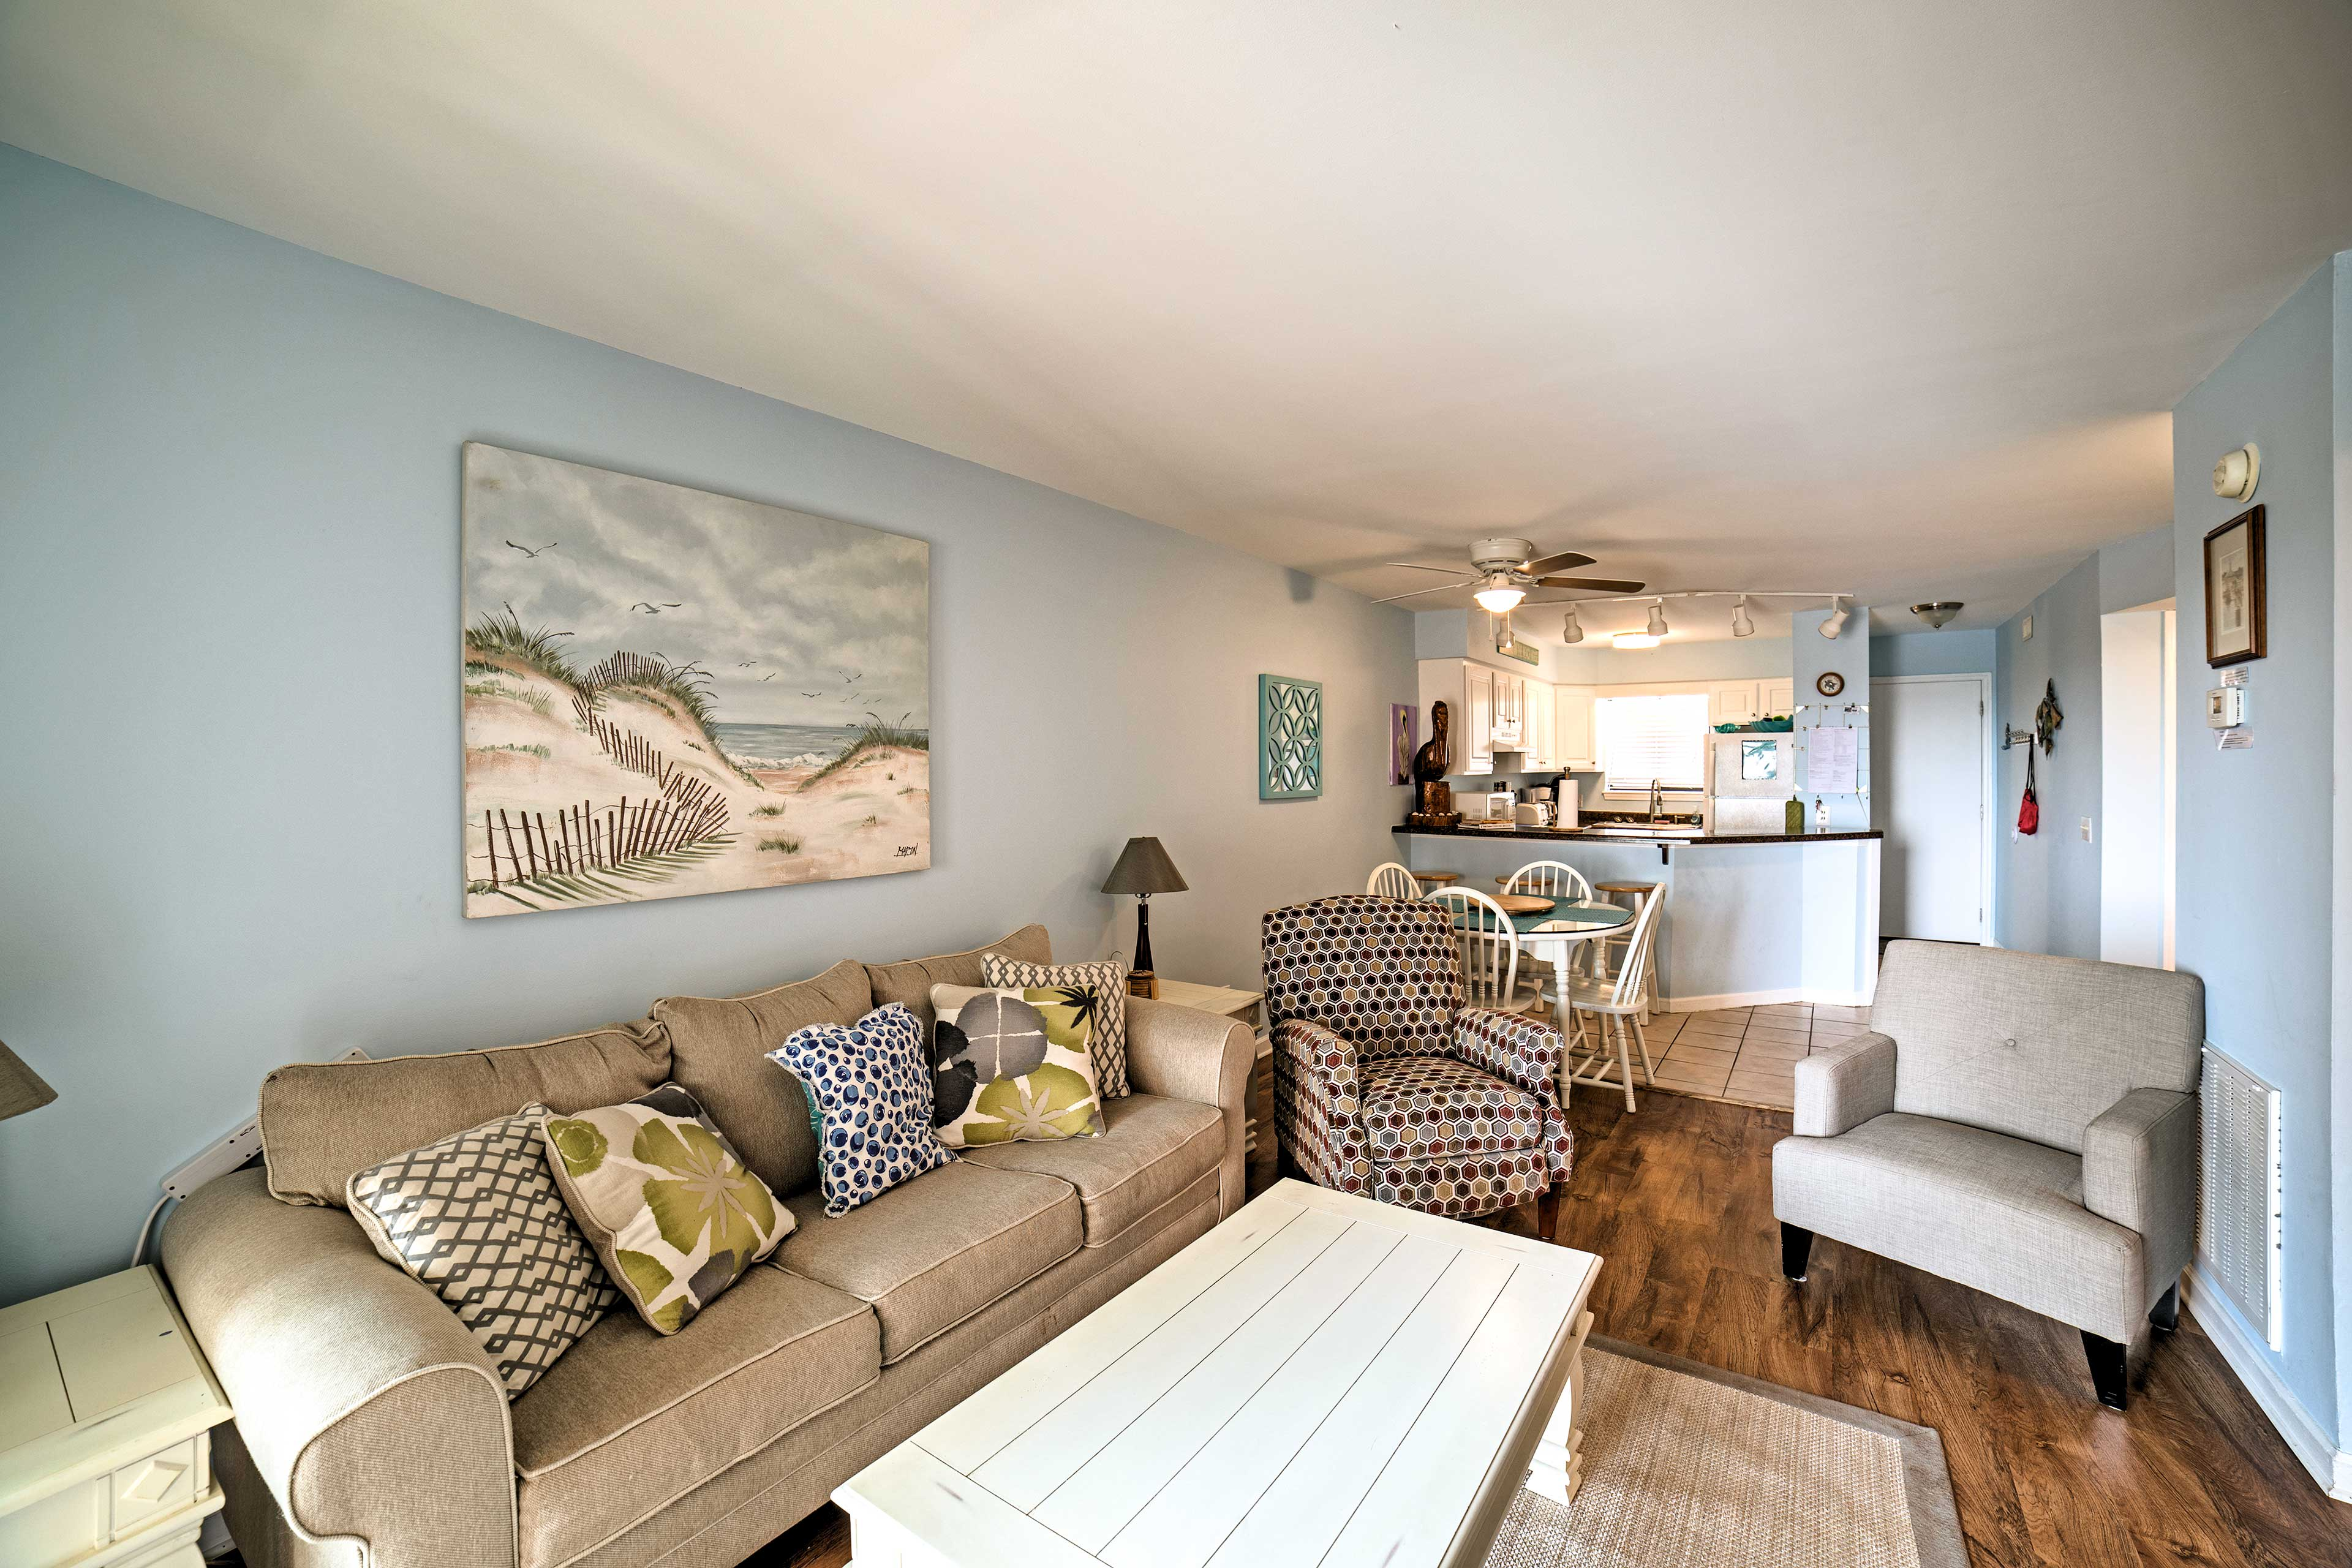 Inside, you'll find tasteful nautical decor and comfortable furnishings.